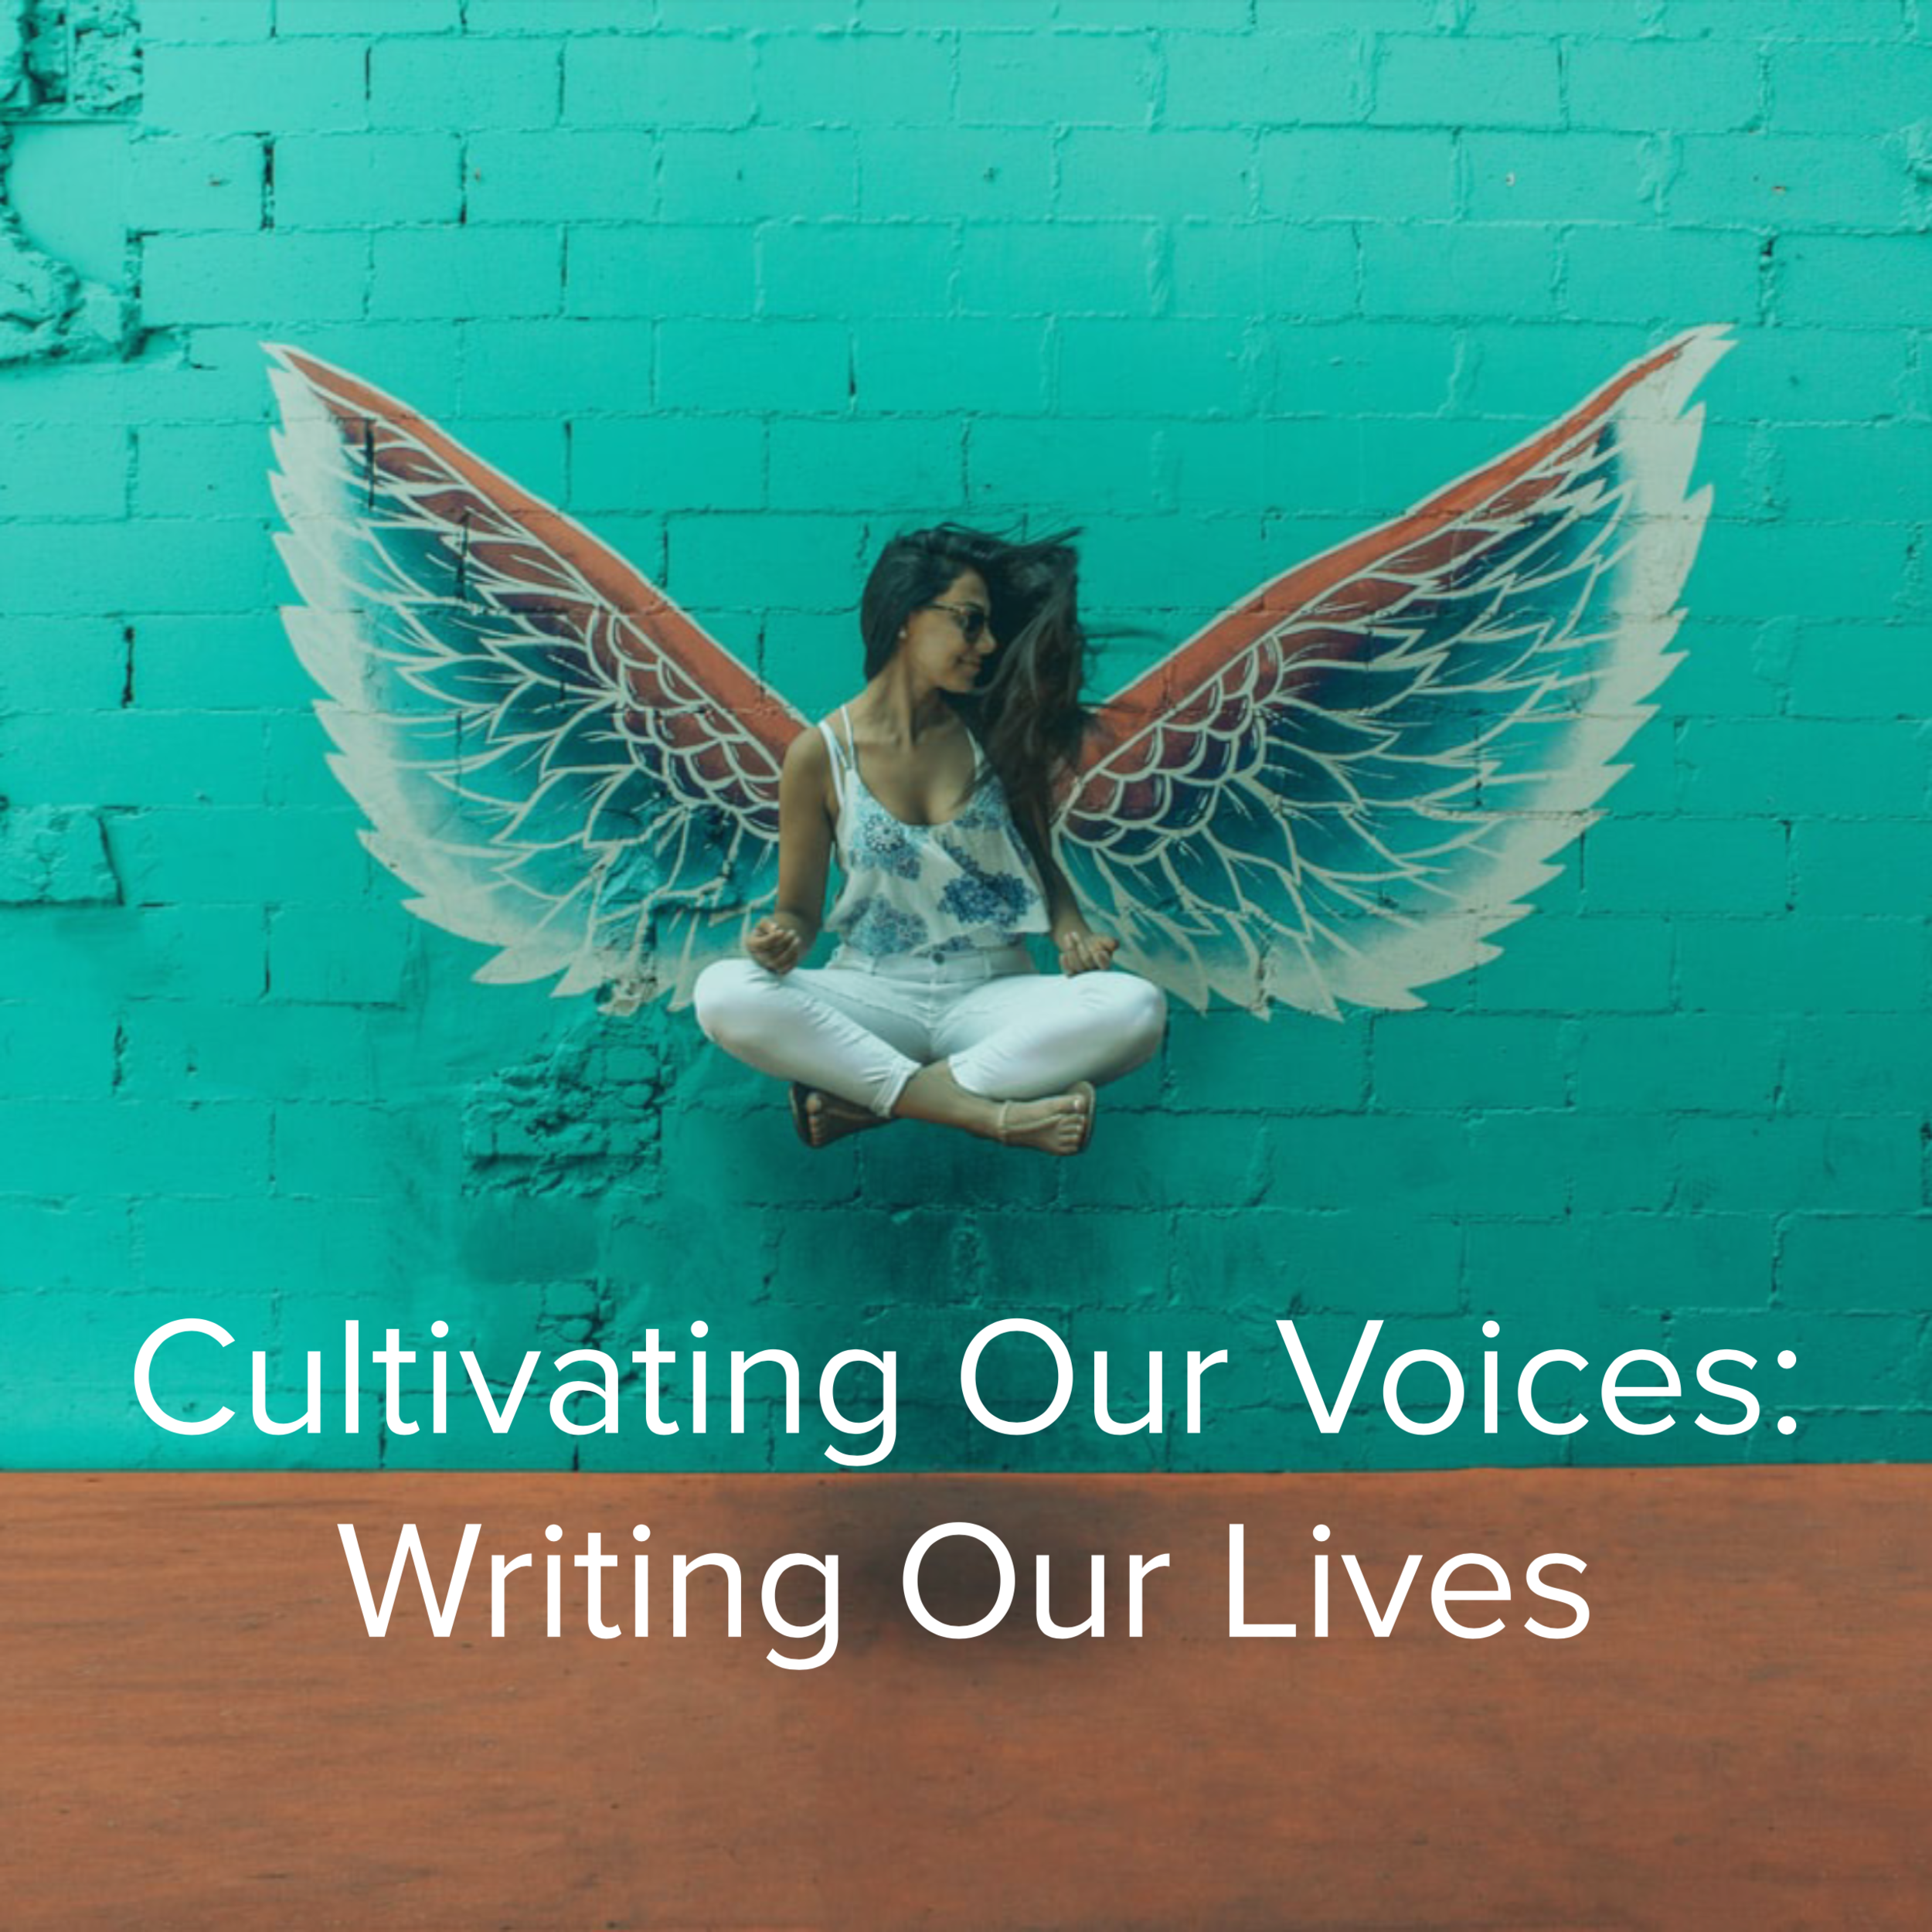 Cultivating Our Voices: Writing Our Lives - Ongoing self-paced class currently available!